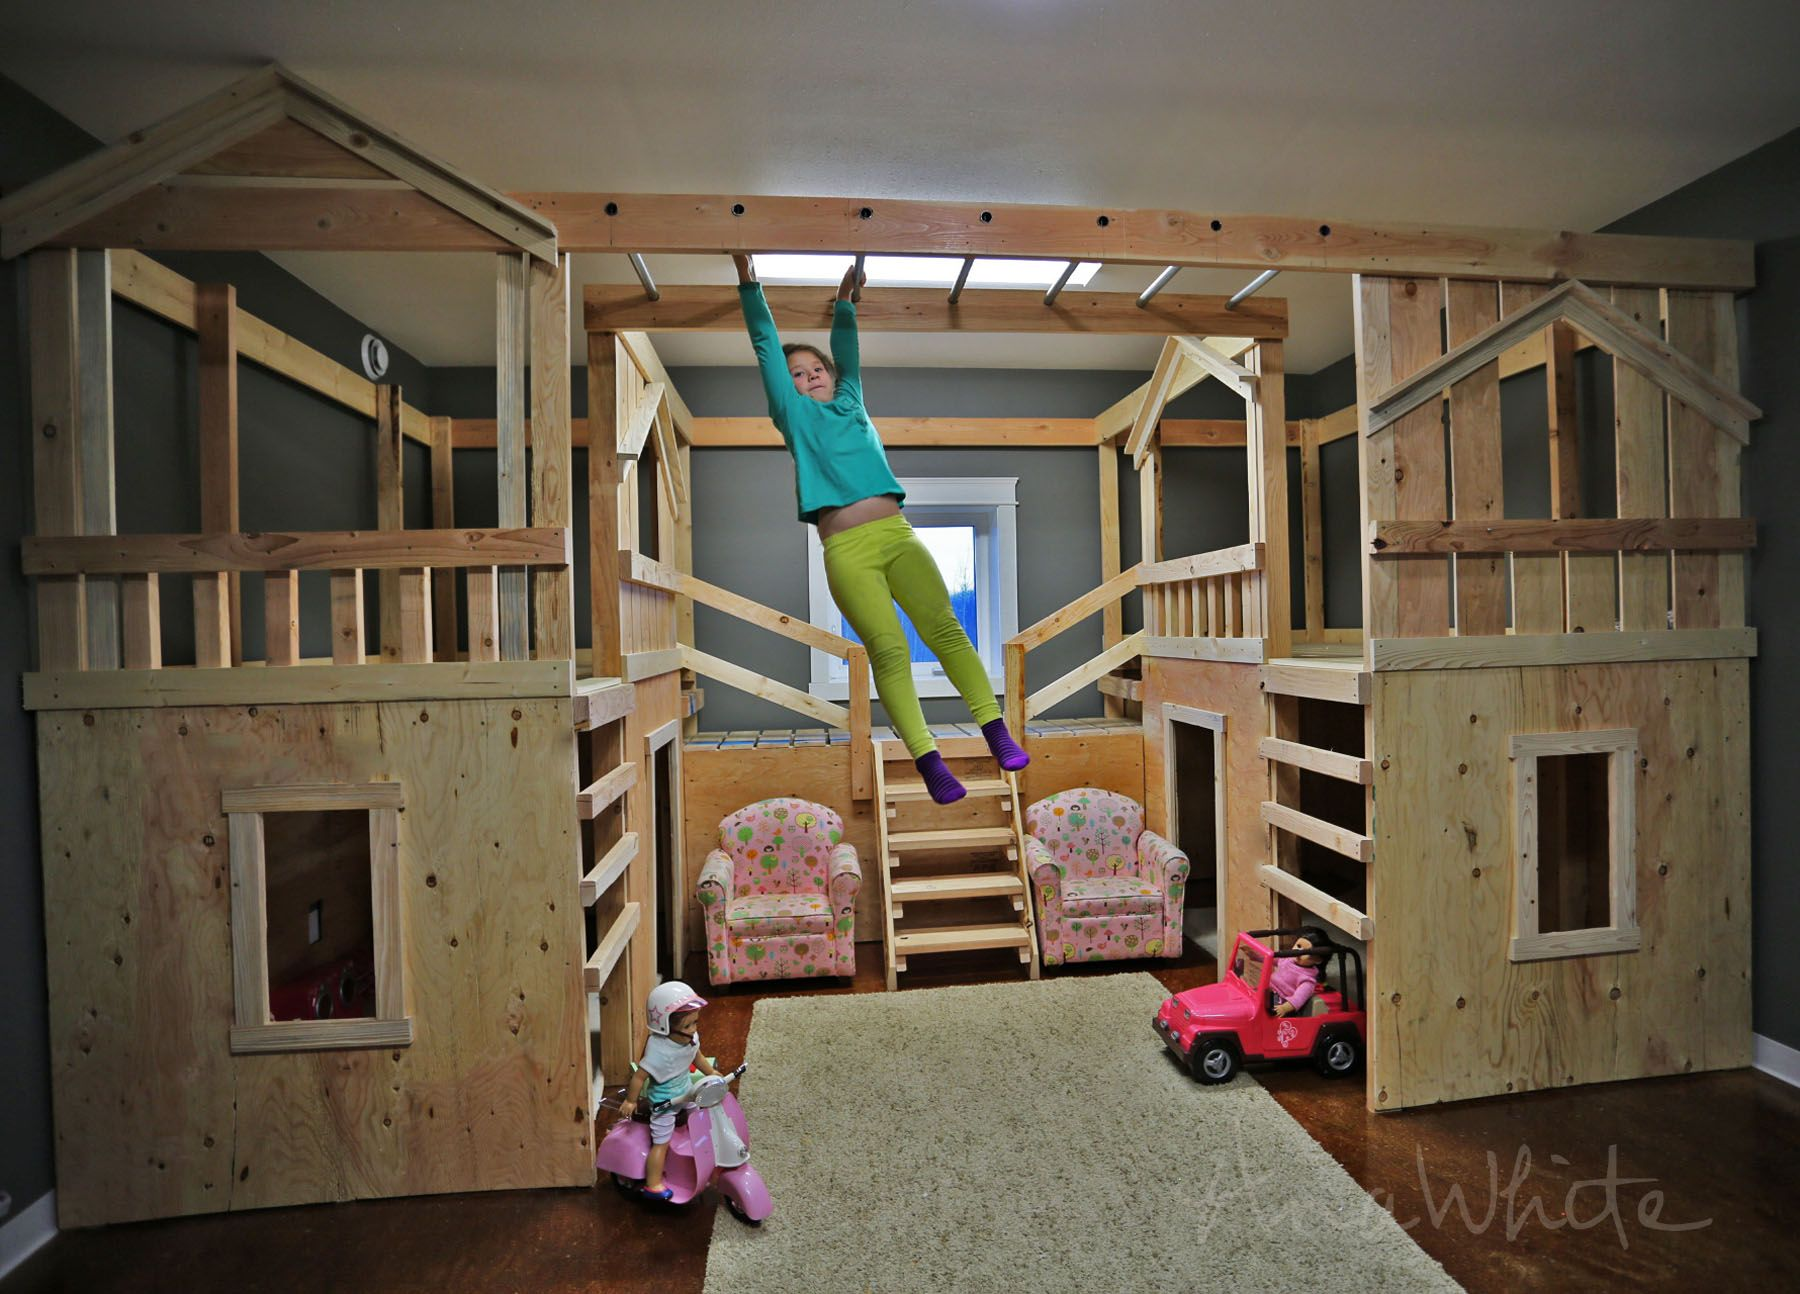 Ana white build a diy basement indoor playground with monkey bars